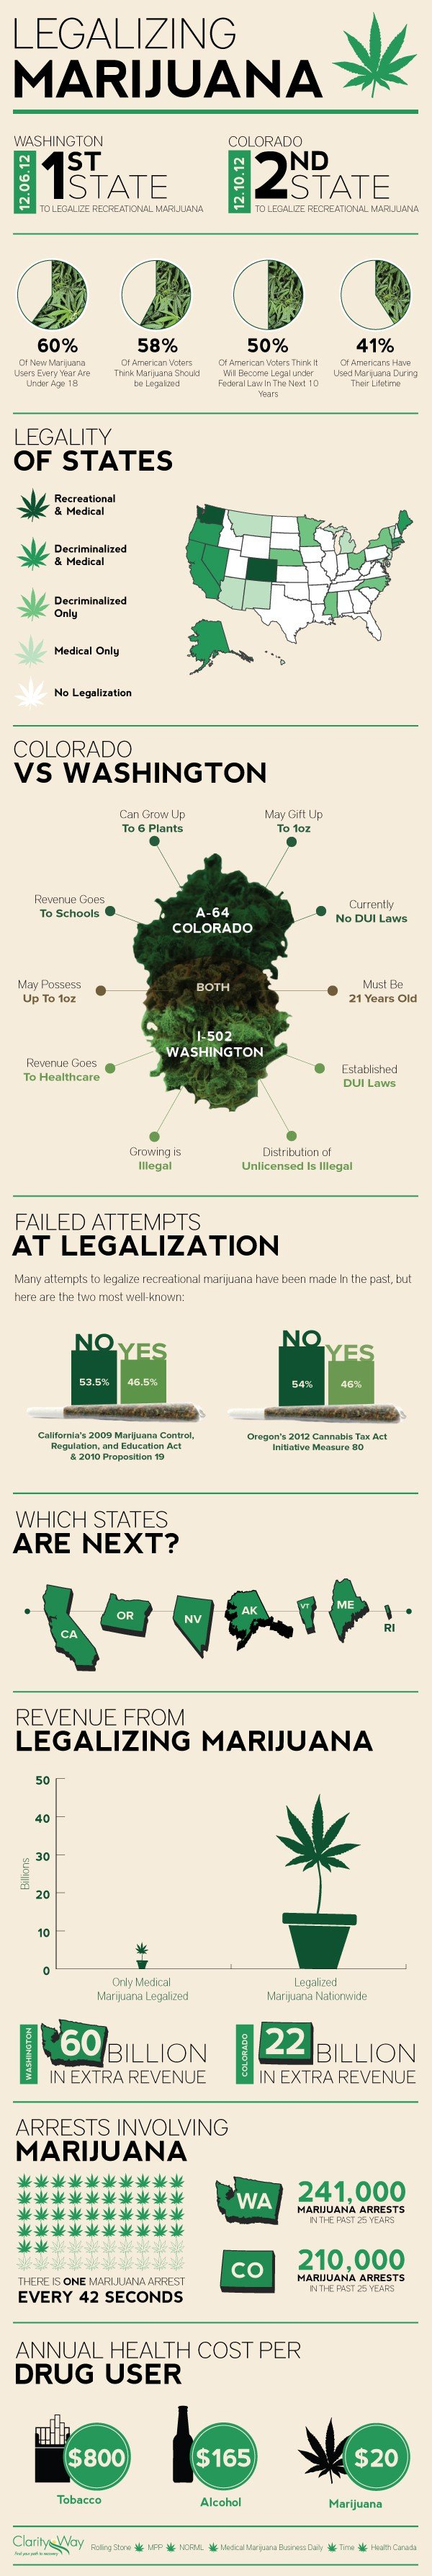 persuasive speech marijuana should be legal Study flashcards on persuasive speech at cramcom quickly memorize the terms, phrases and much more why marijuana should be legalized for medical use and recreational use ii how marijuana is a harmless drug and not addicting iii.